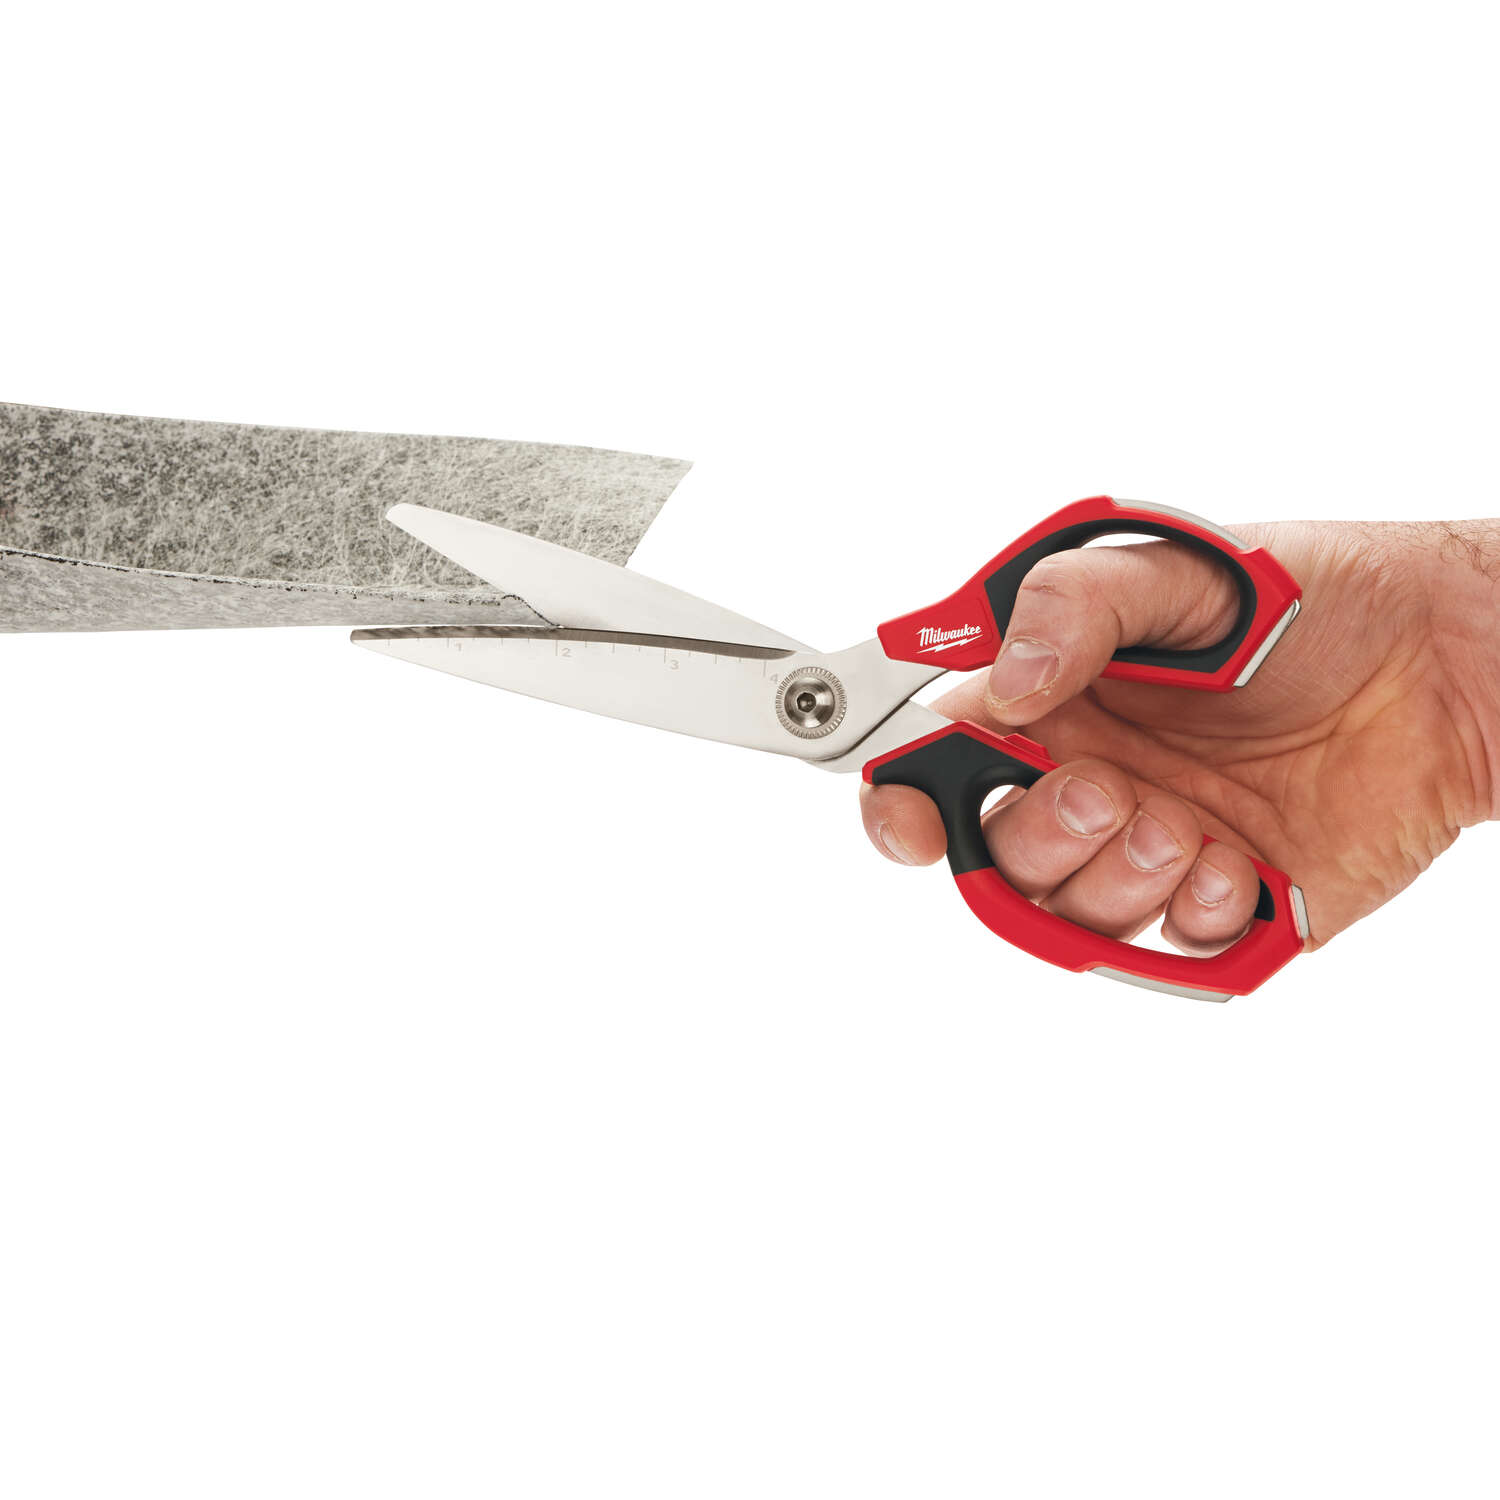 Milwaukee  9 in. Iron Carbide  Smooth  Straight  Jobsite Scissors  Red  1 pc.